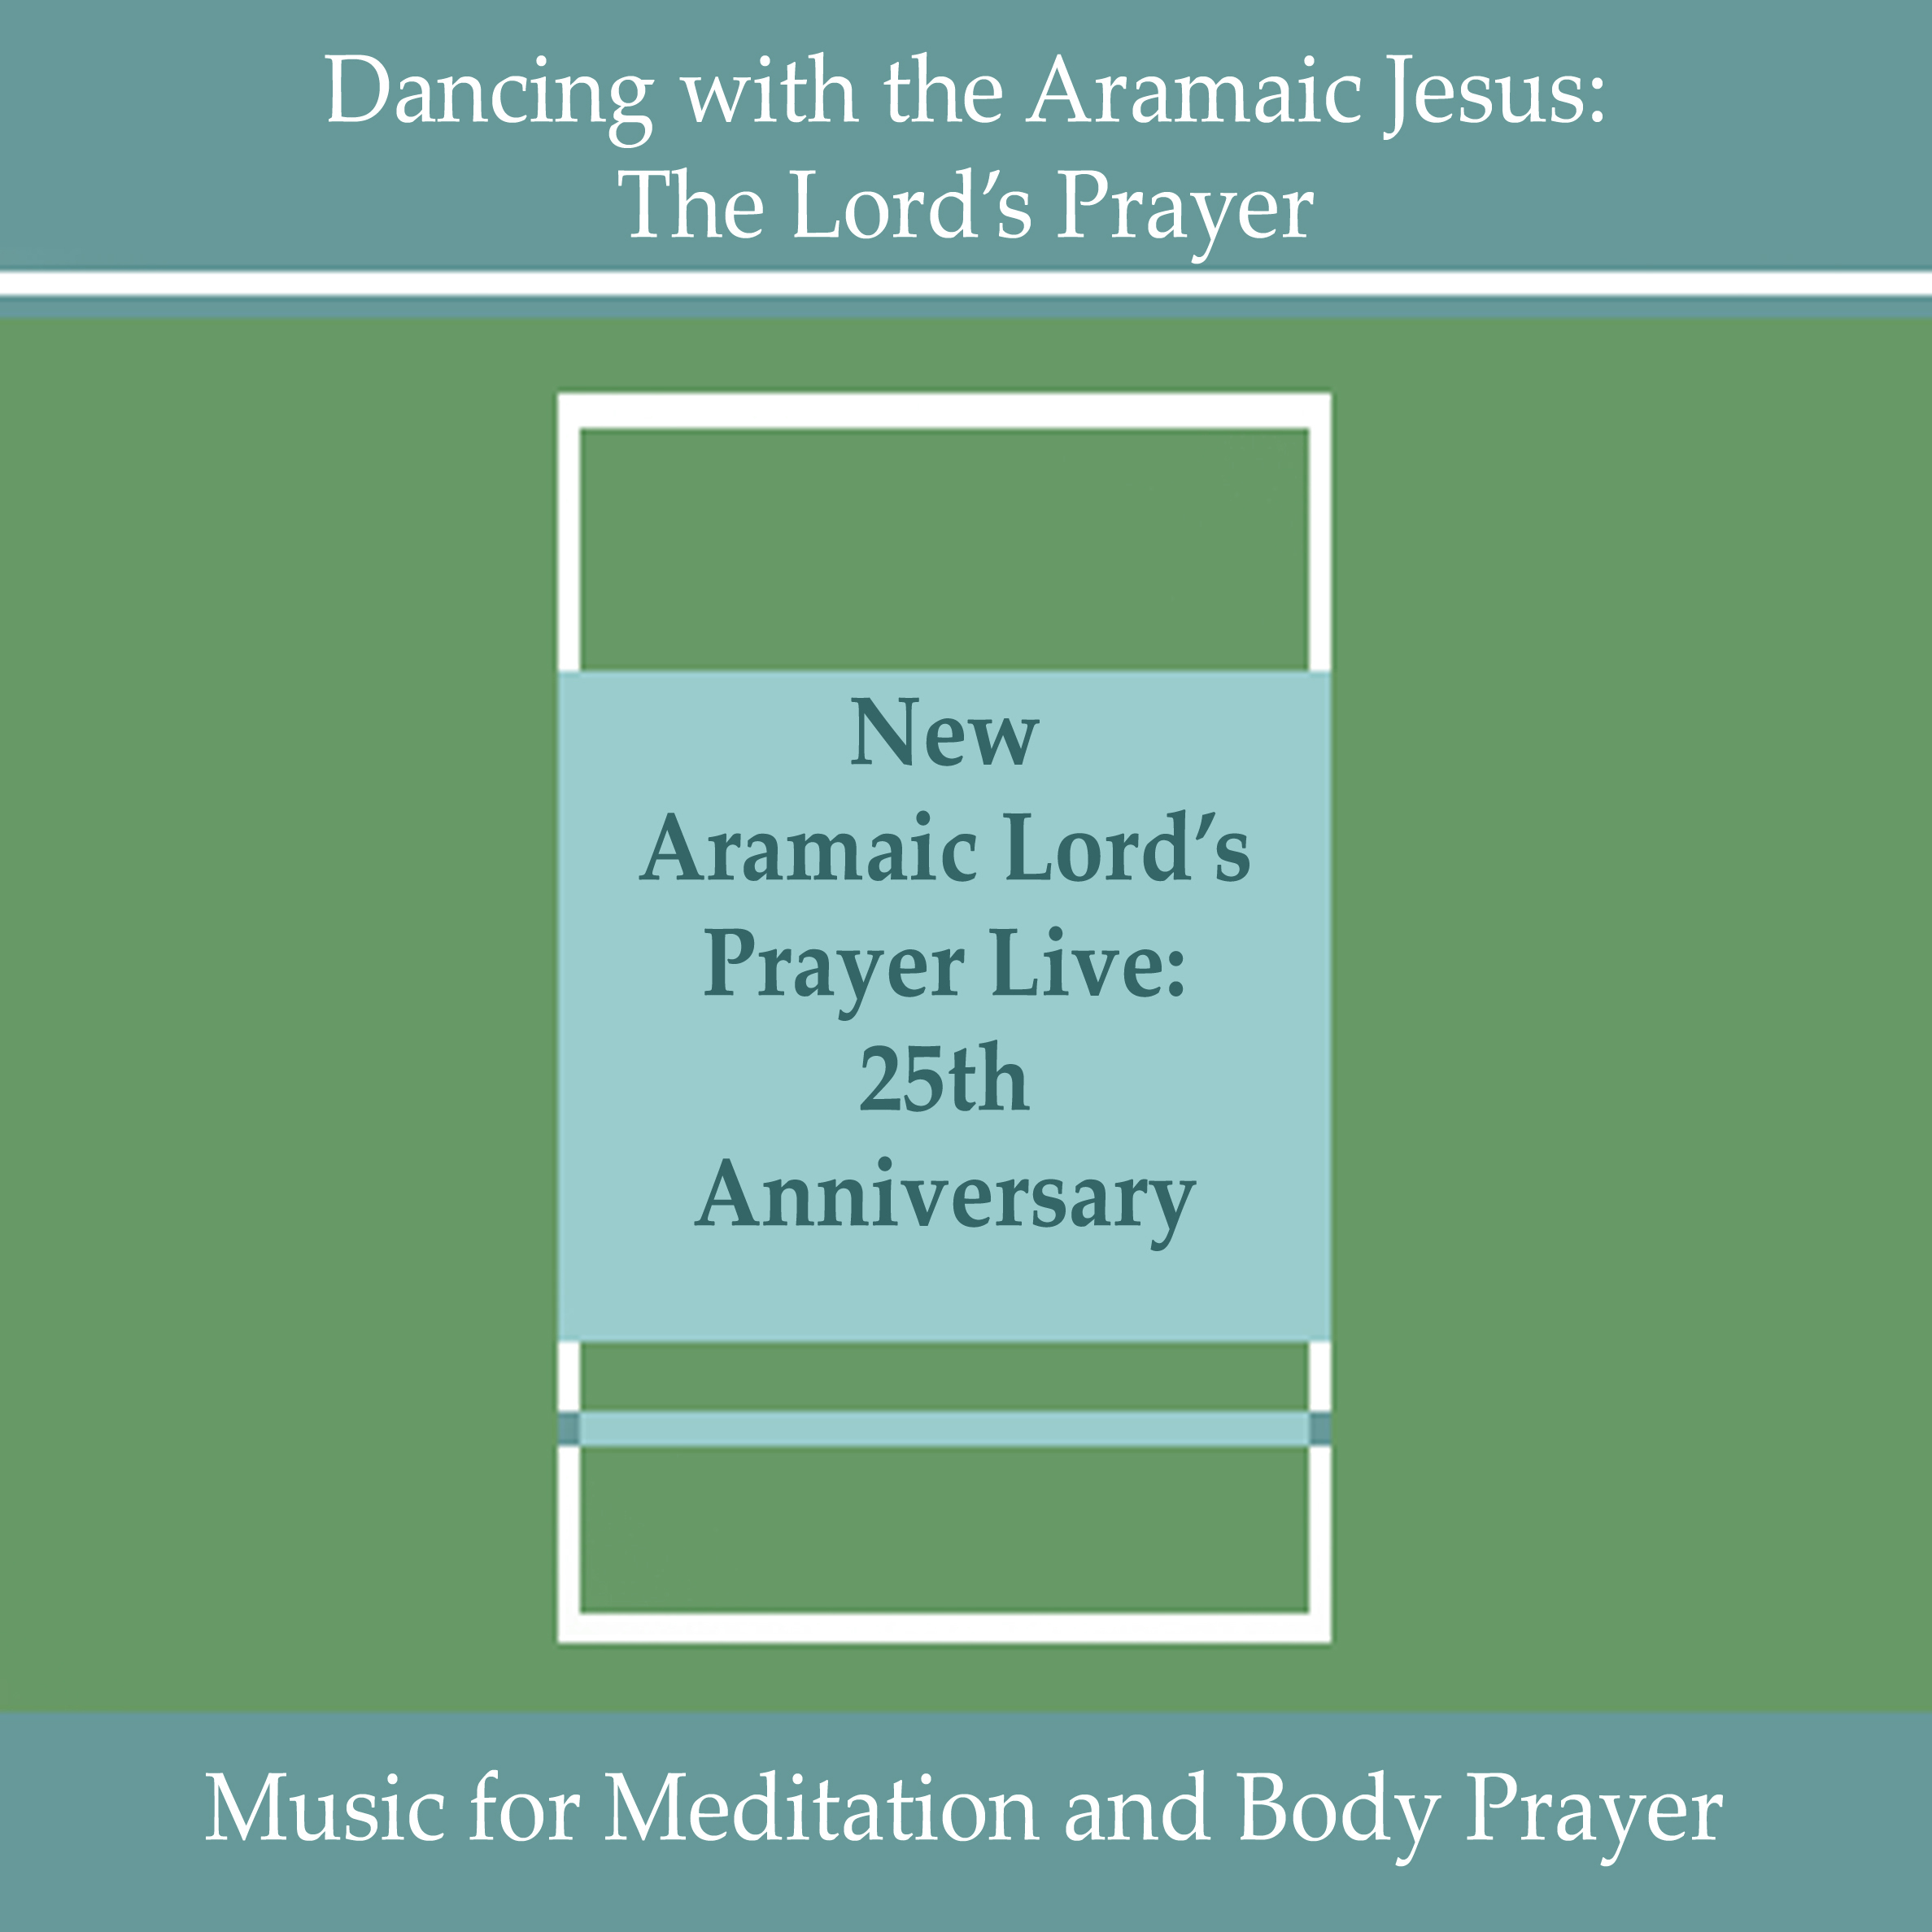 New Aramaic Prayer Live: 25th Anniversary